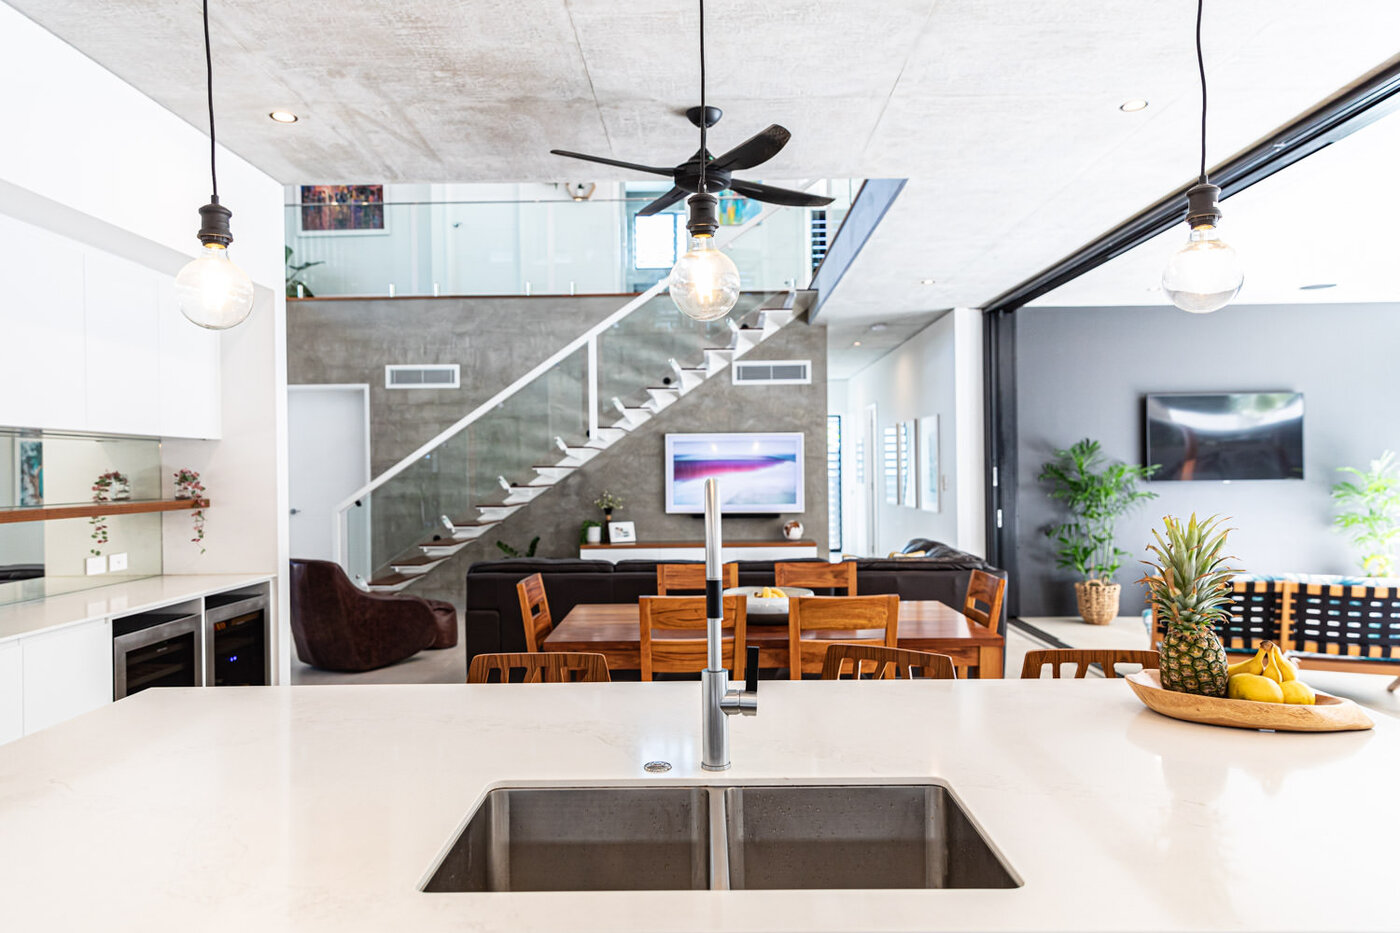 Luxurious dining area with wine fridge overlooking living room